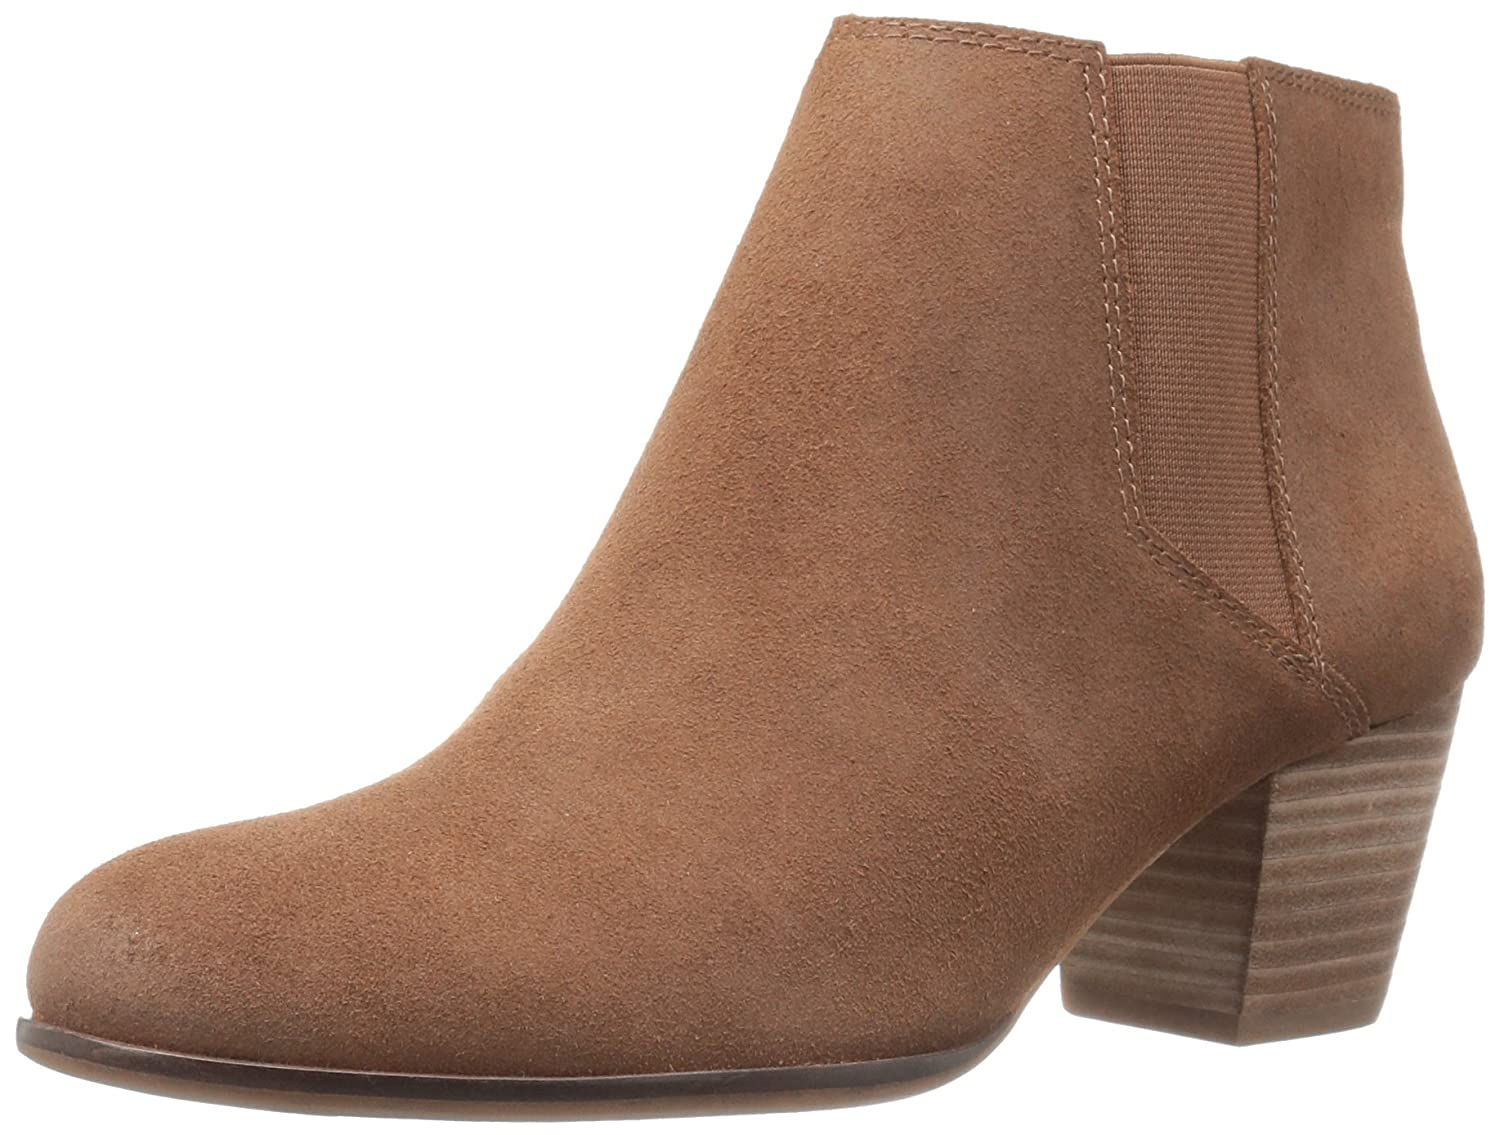 Lucky Brand Women's Tulayne Ankle Bootie B01EIL2M6Q 6.5 B(M) US|Toffee